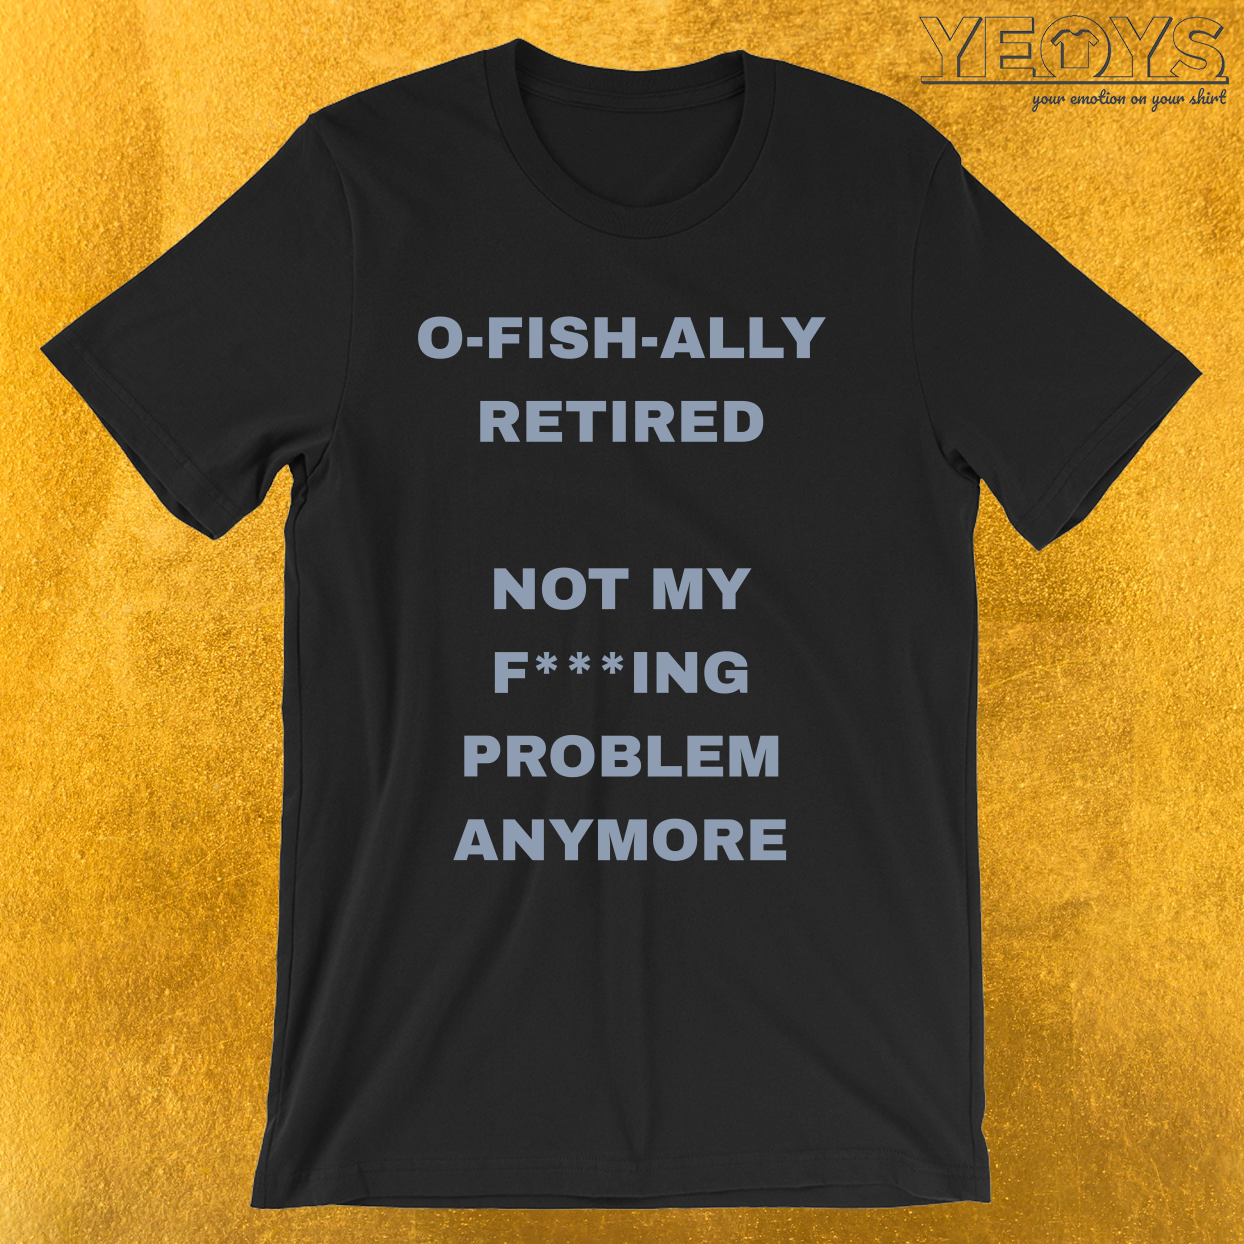 O-Fish-Ally Retired – Old Fisherman Tee